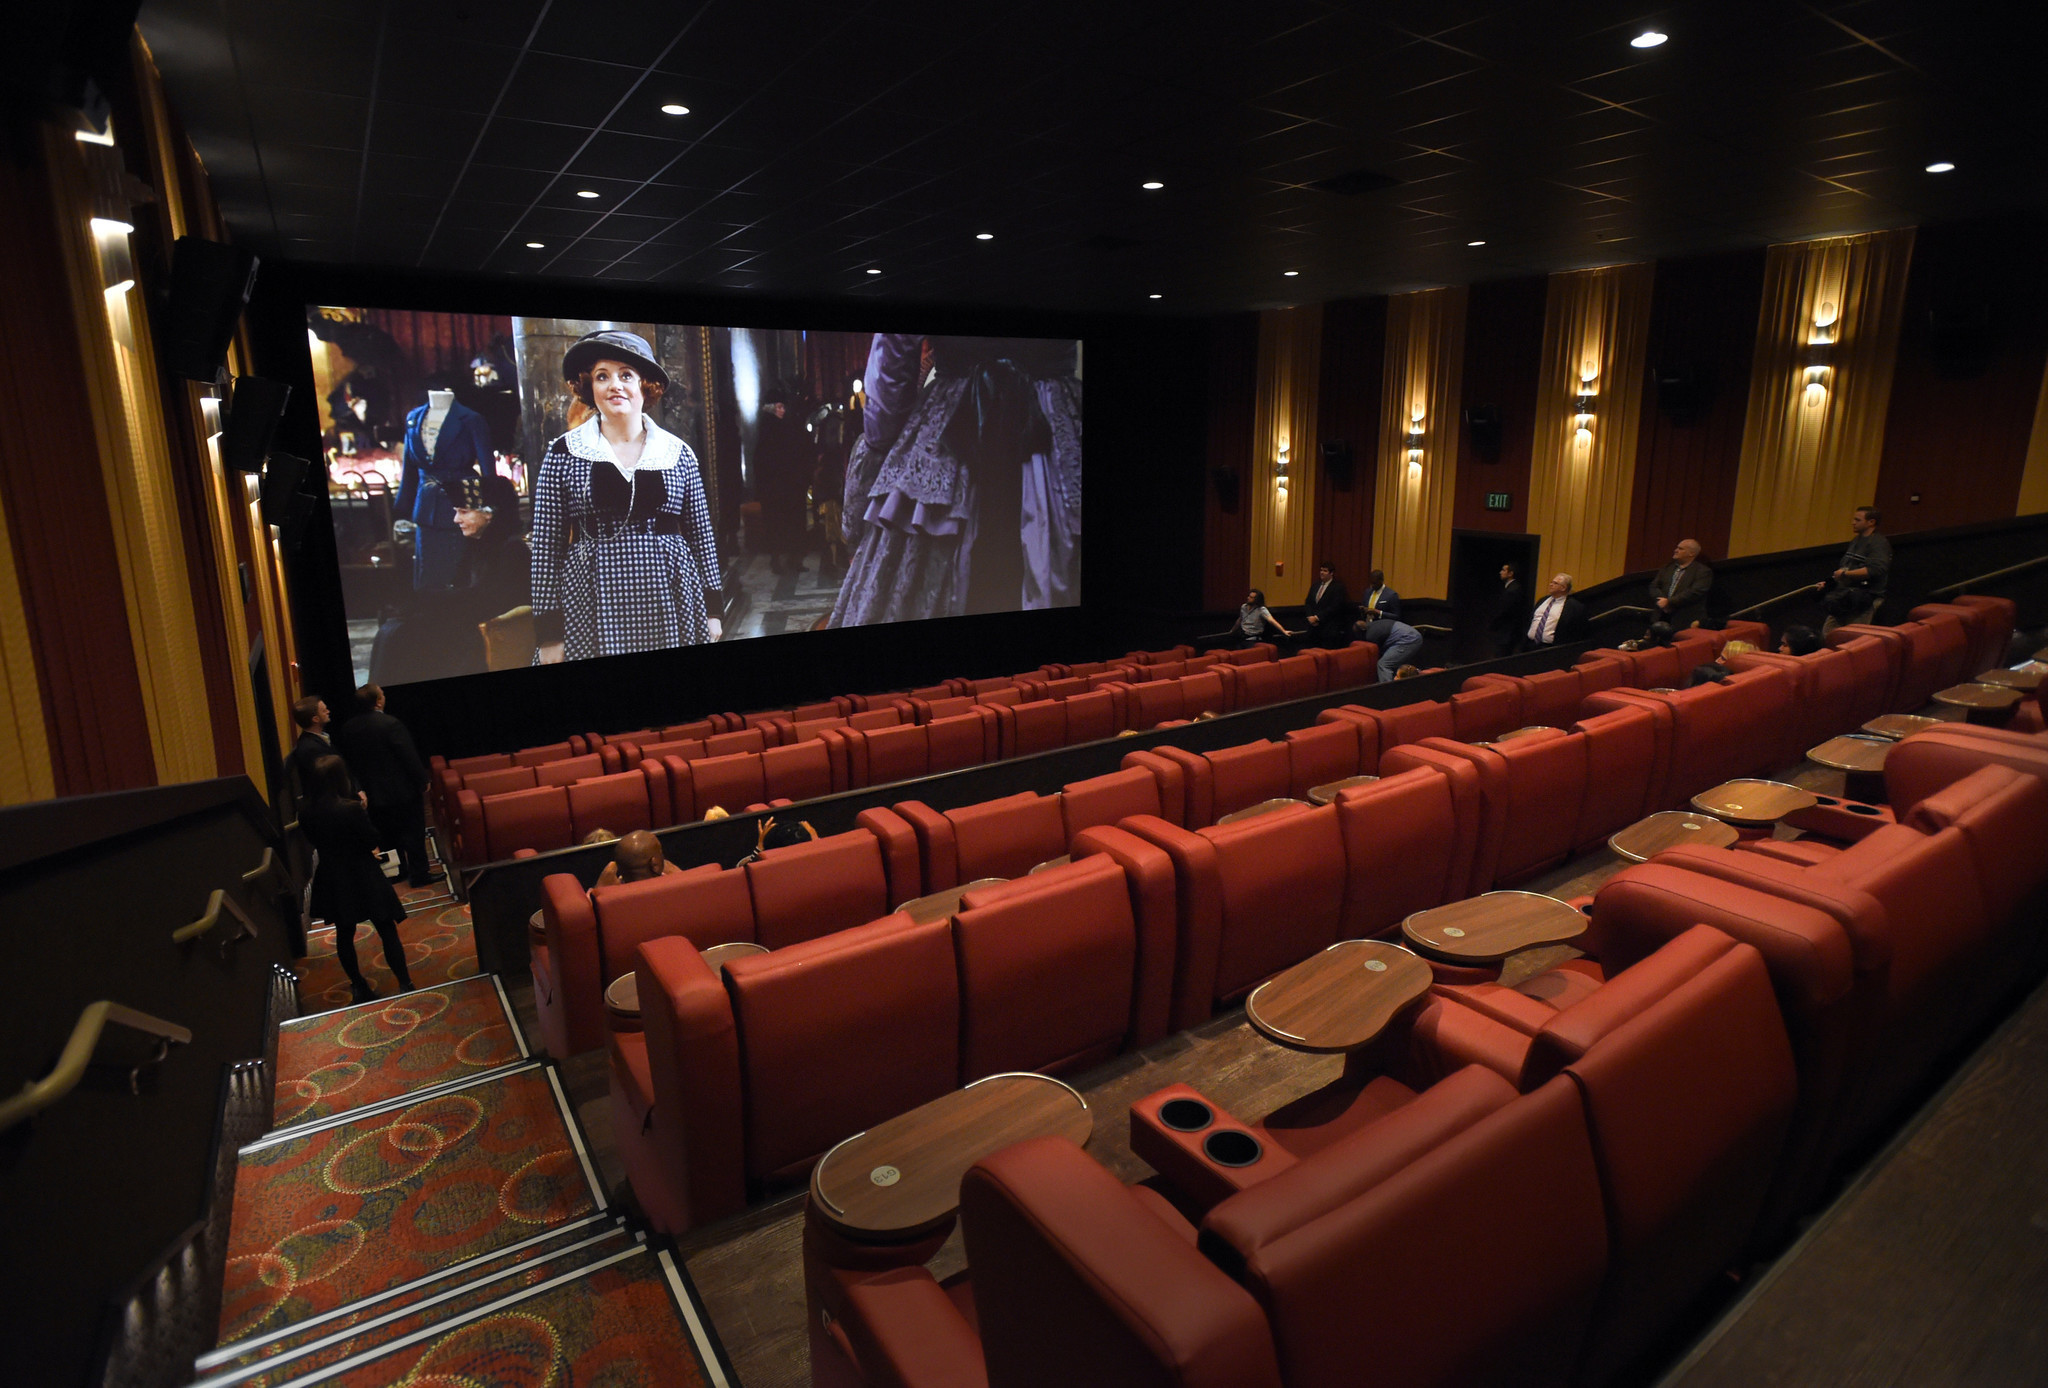 theater rotunda movie movies seating theaters luxury baltimore entertainment soon coming sun dining near